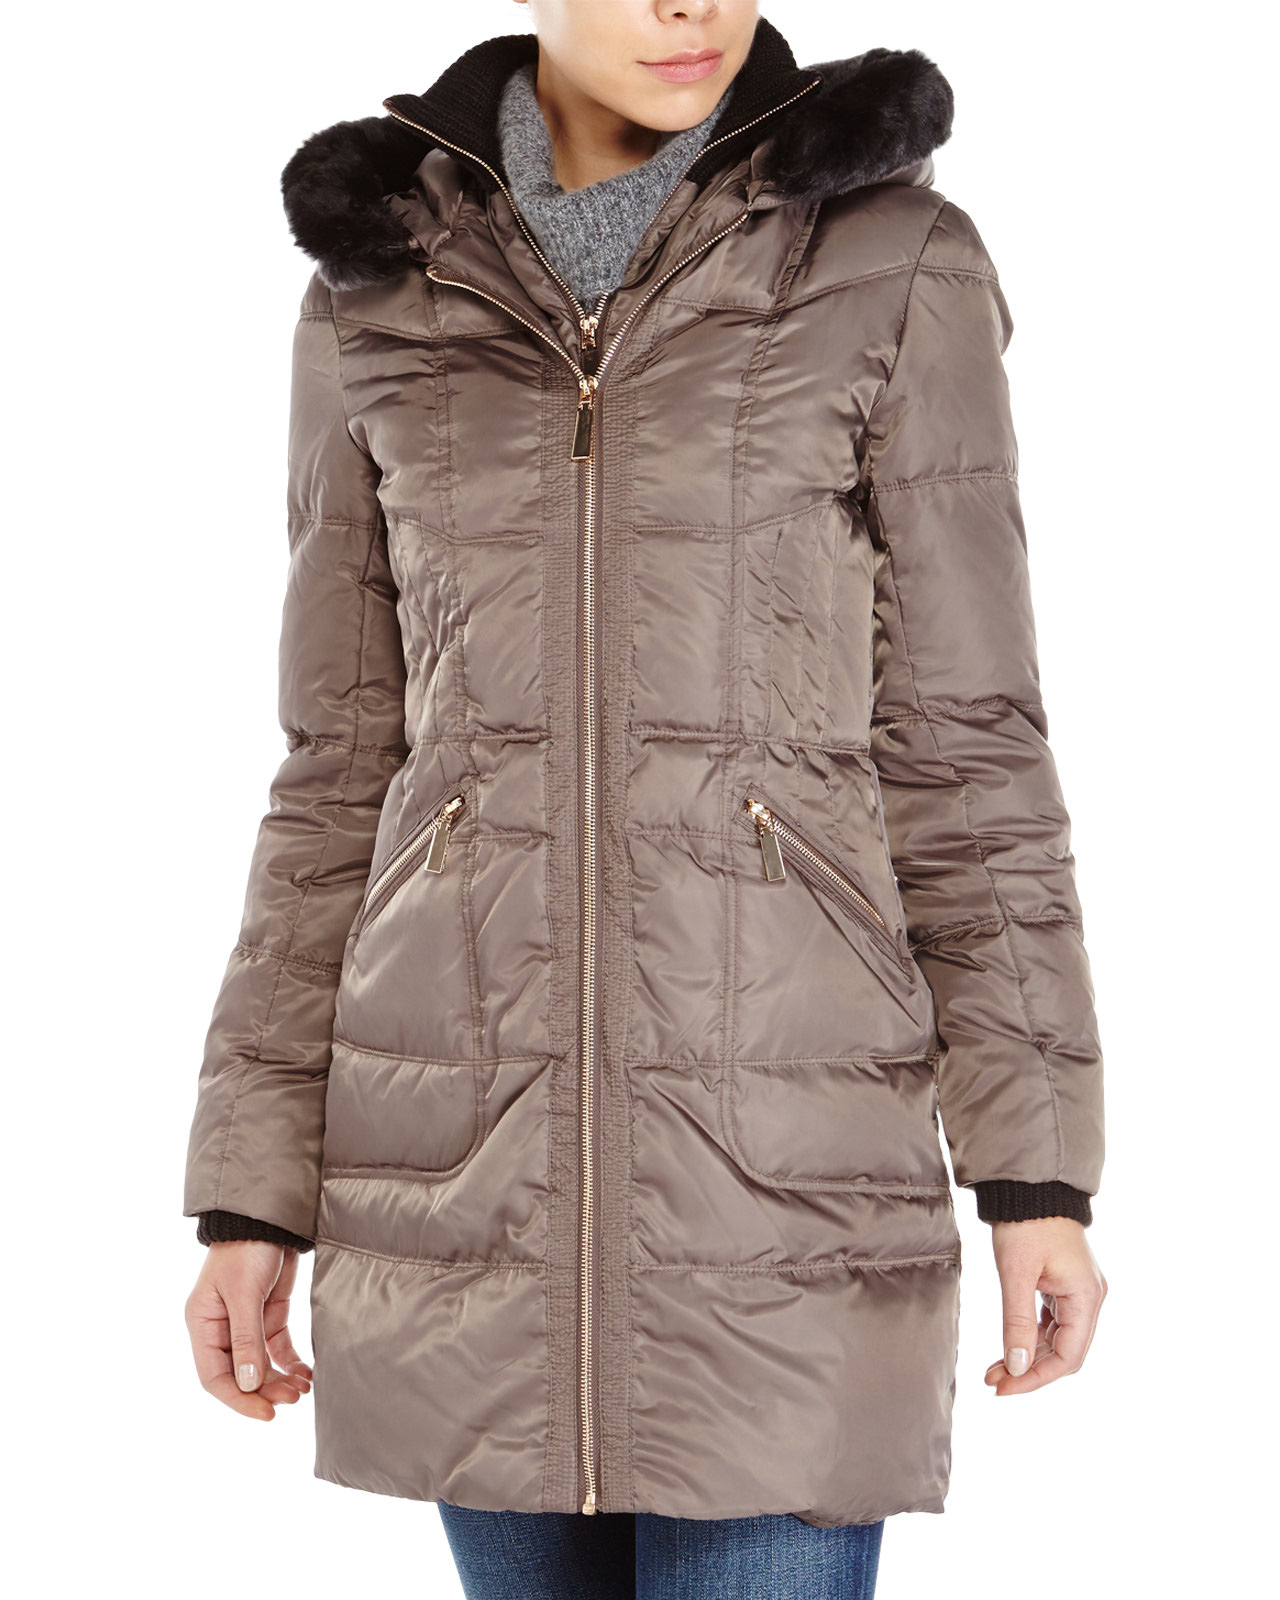 Lyst Vince Camuto Faux Fur Trim Hooded Down Coat In Metallic